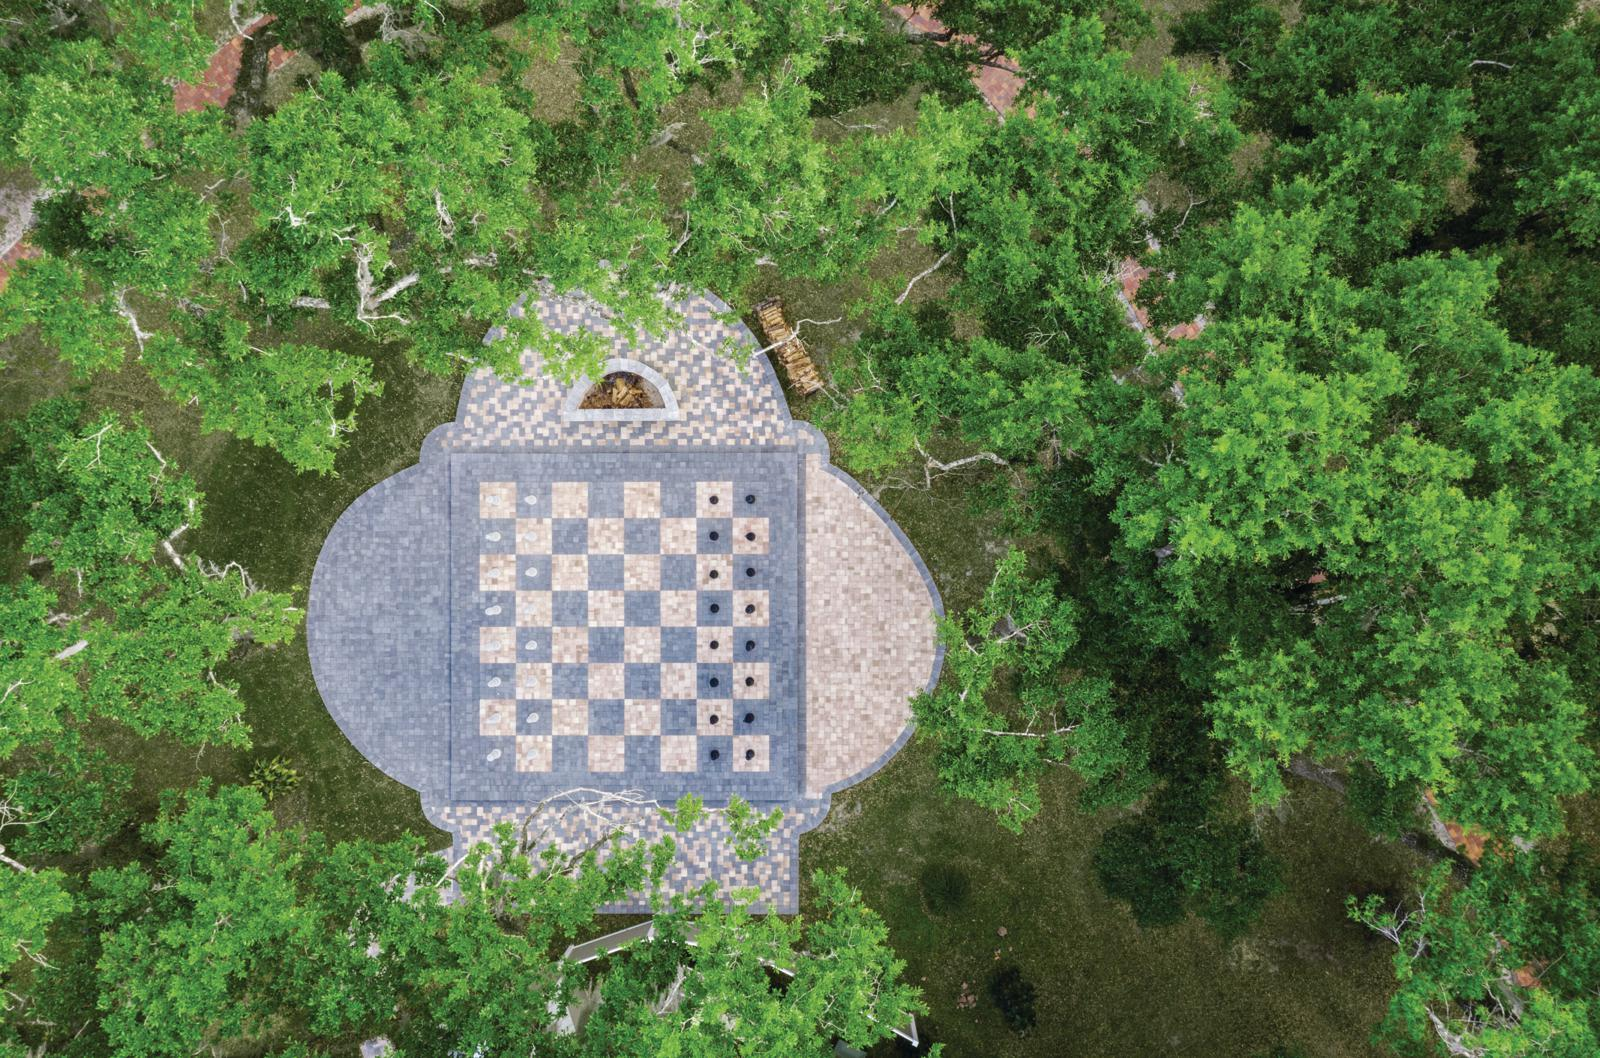 Life Size Chessboard Fire Pit Patio Custom